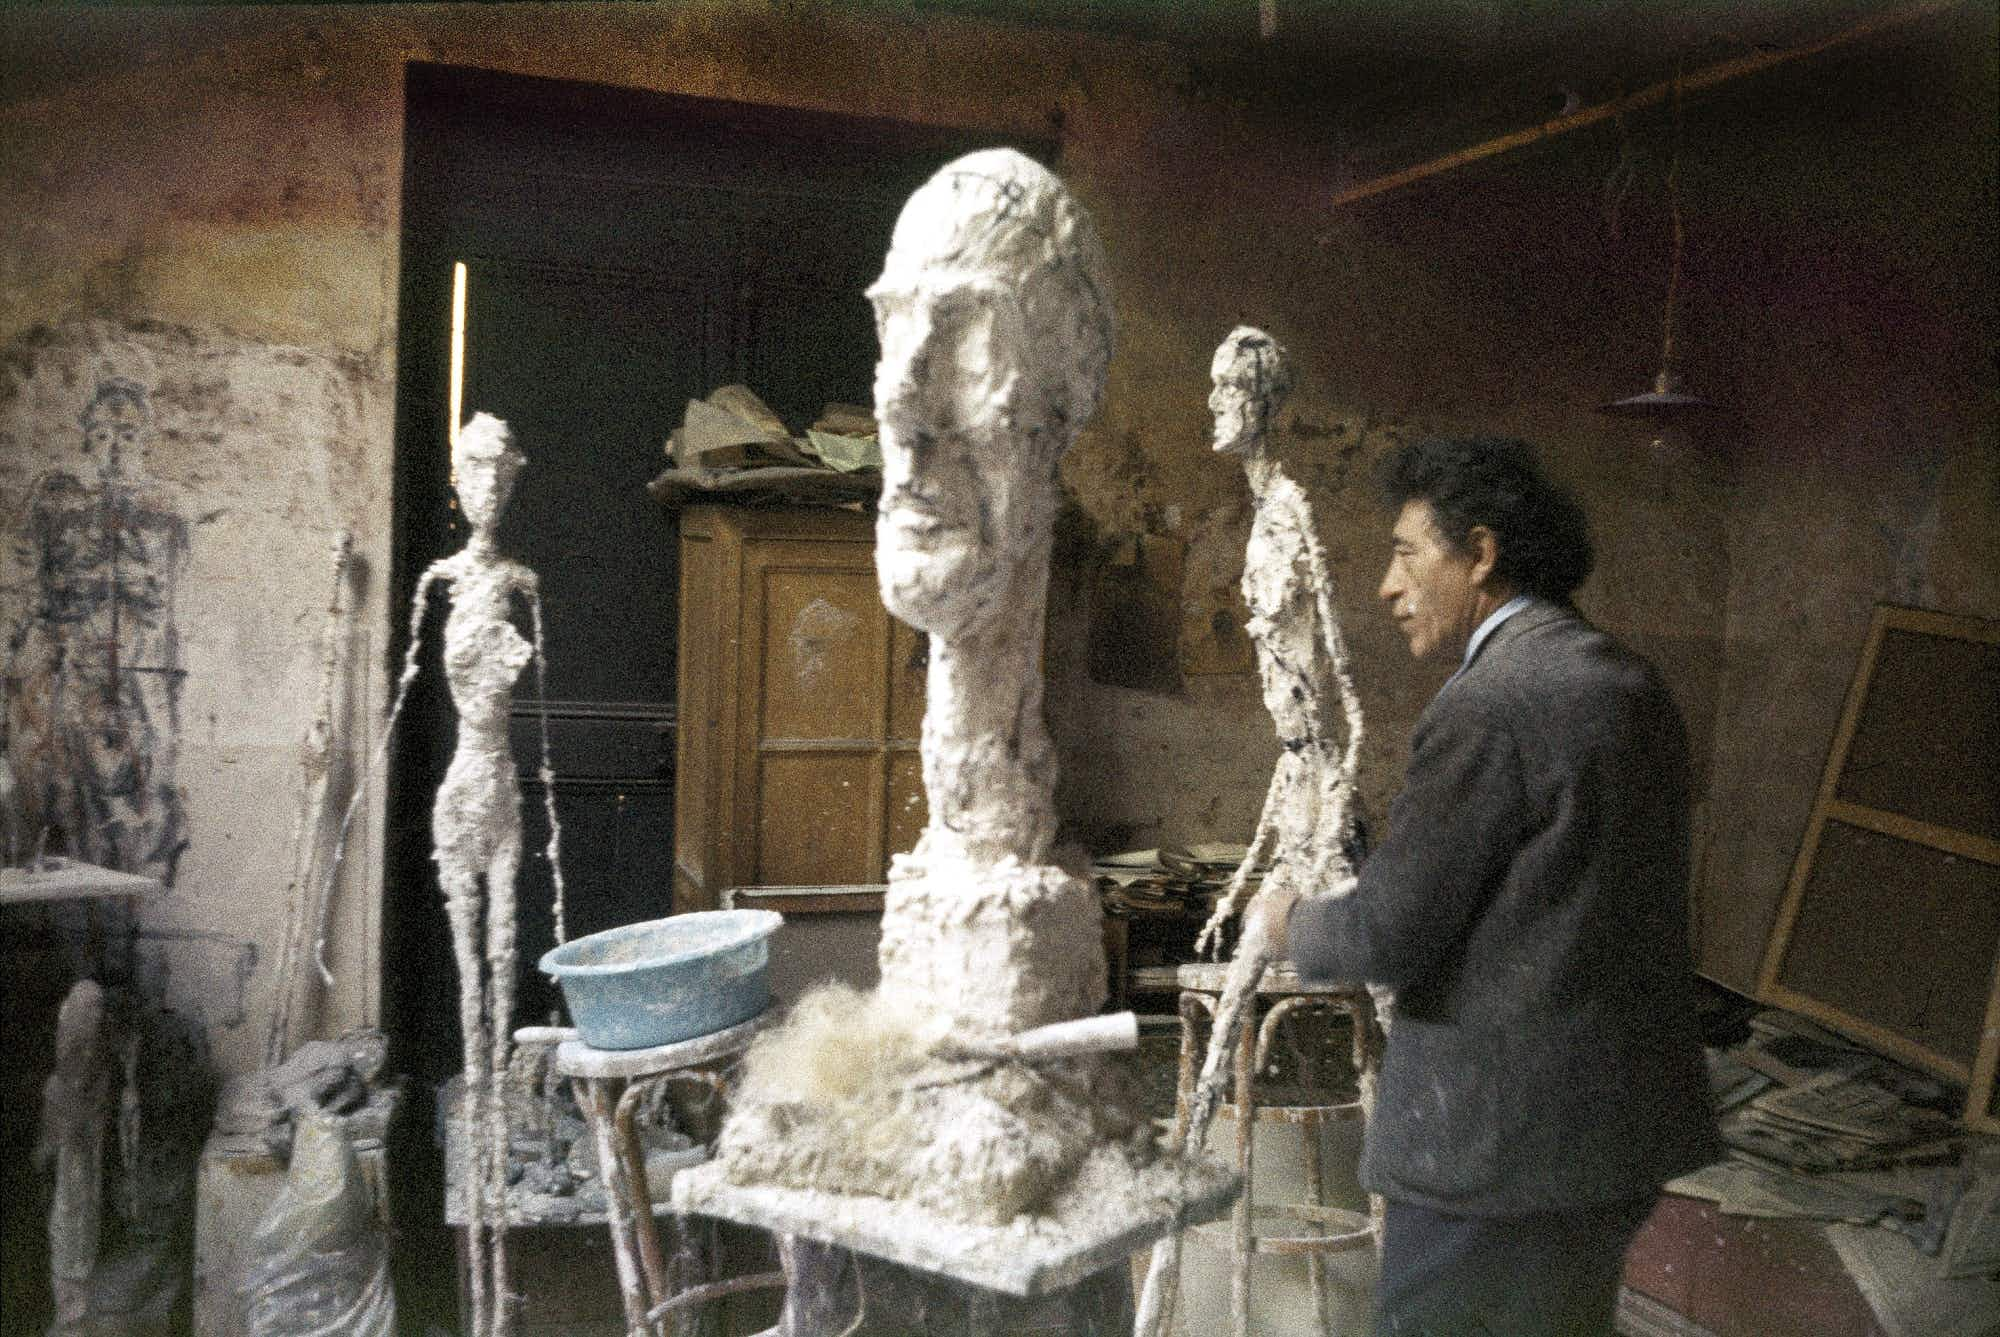 Sculptor Alberto Giacometti is recognised with an institute dedicated to his art in Paris